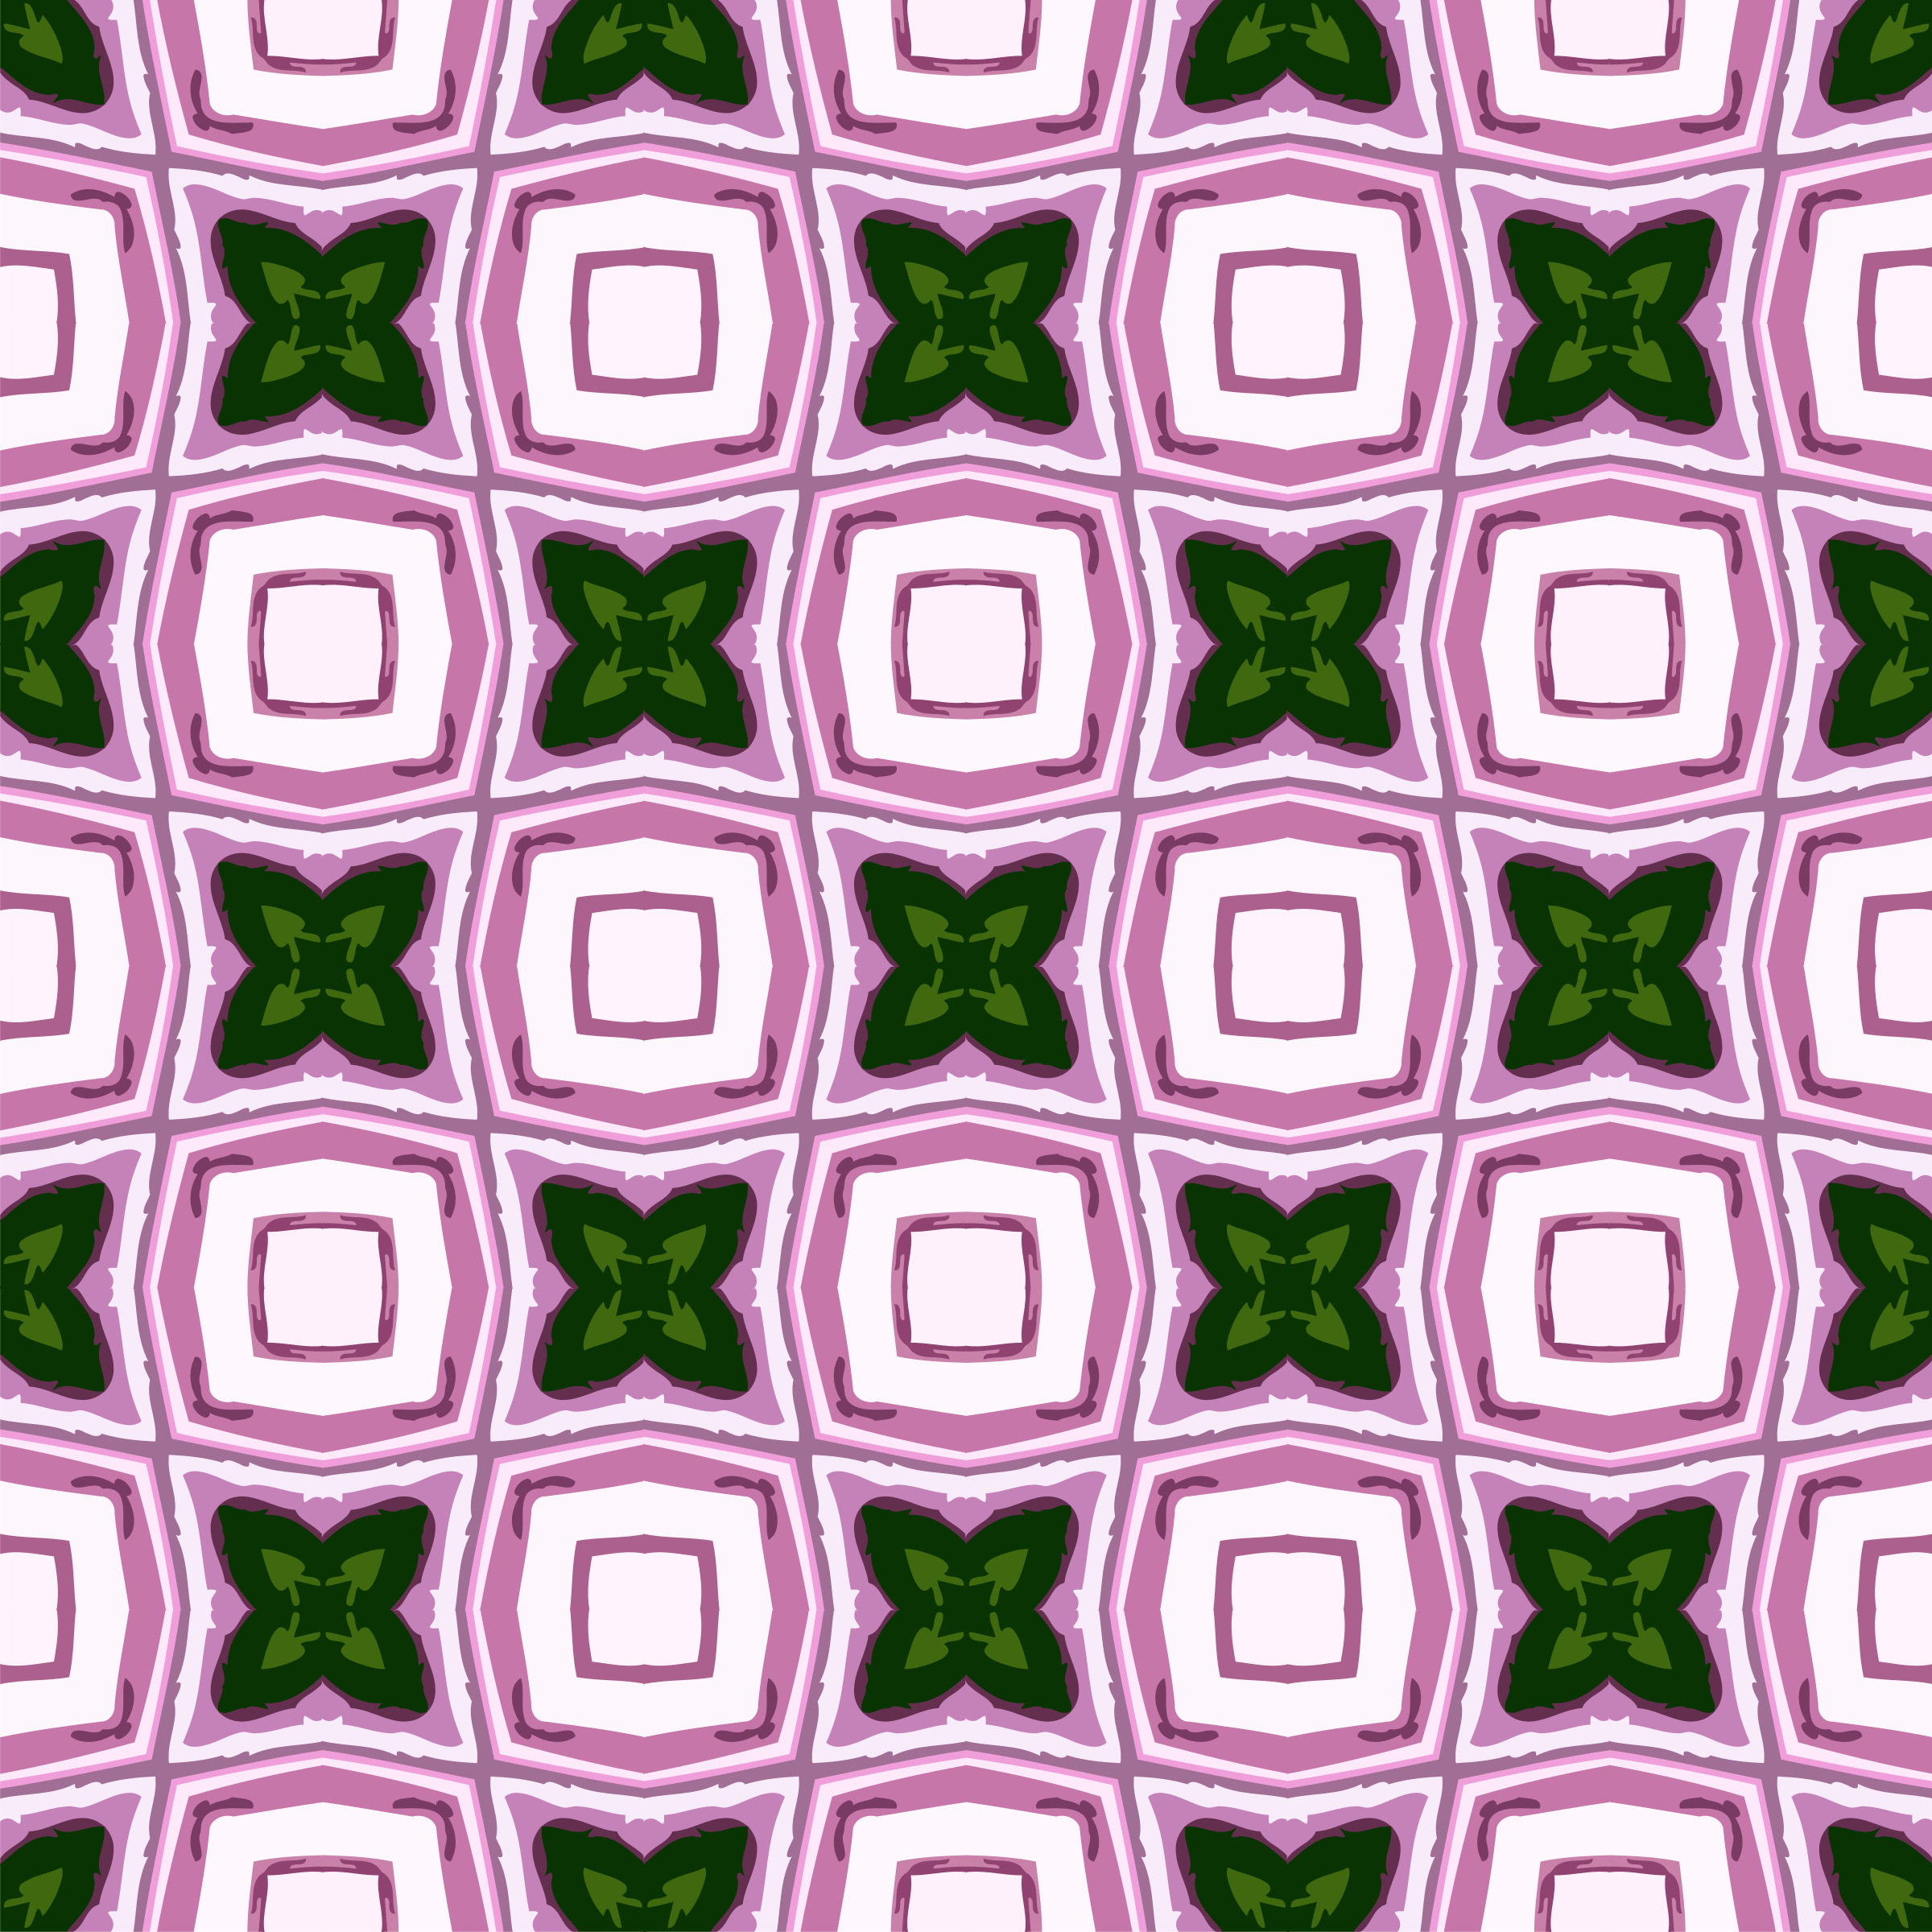 Background pattern 156 (colour 3) by Firkin